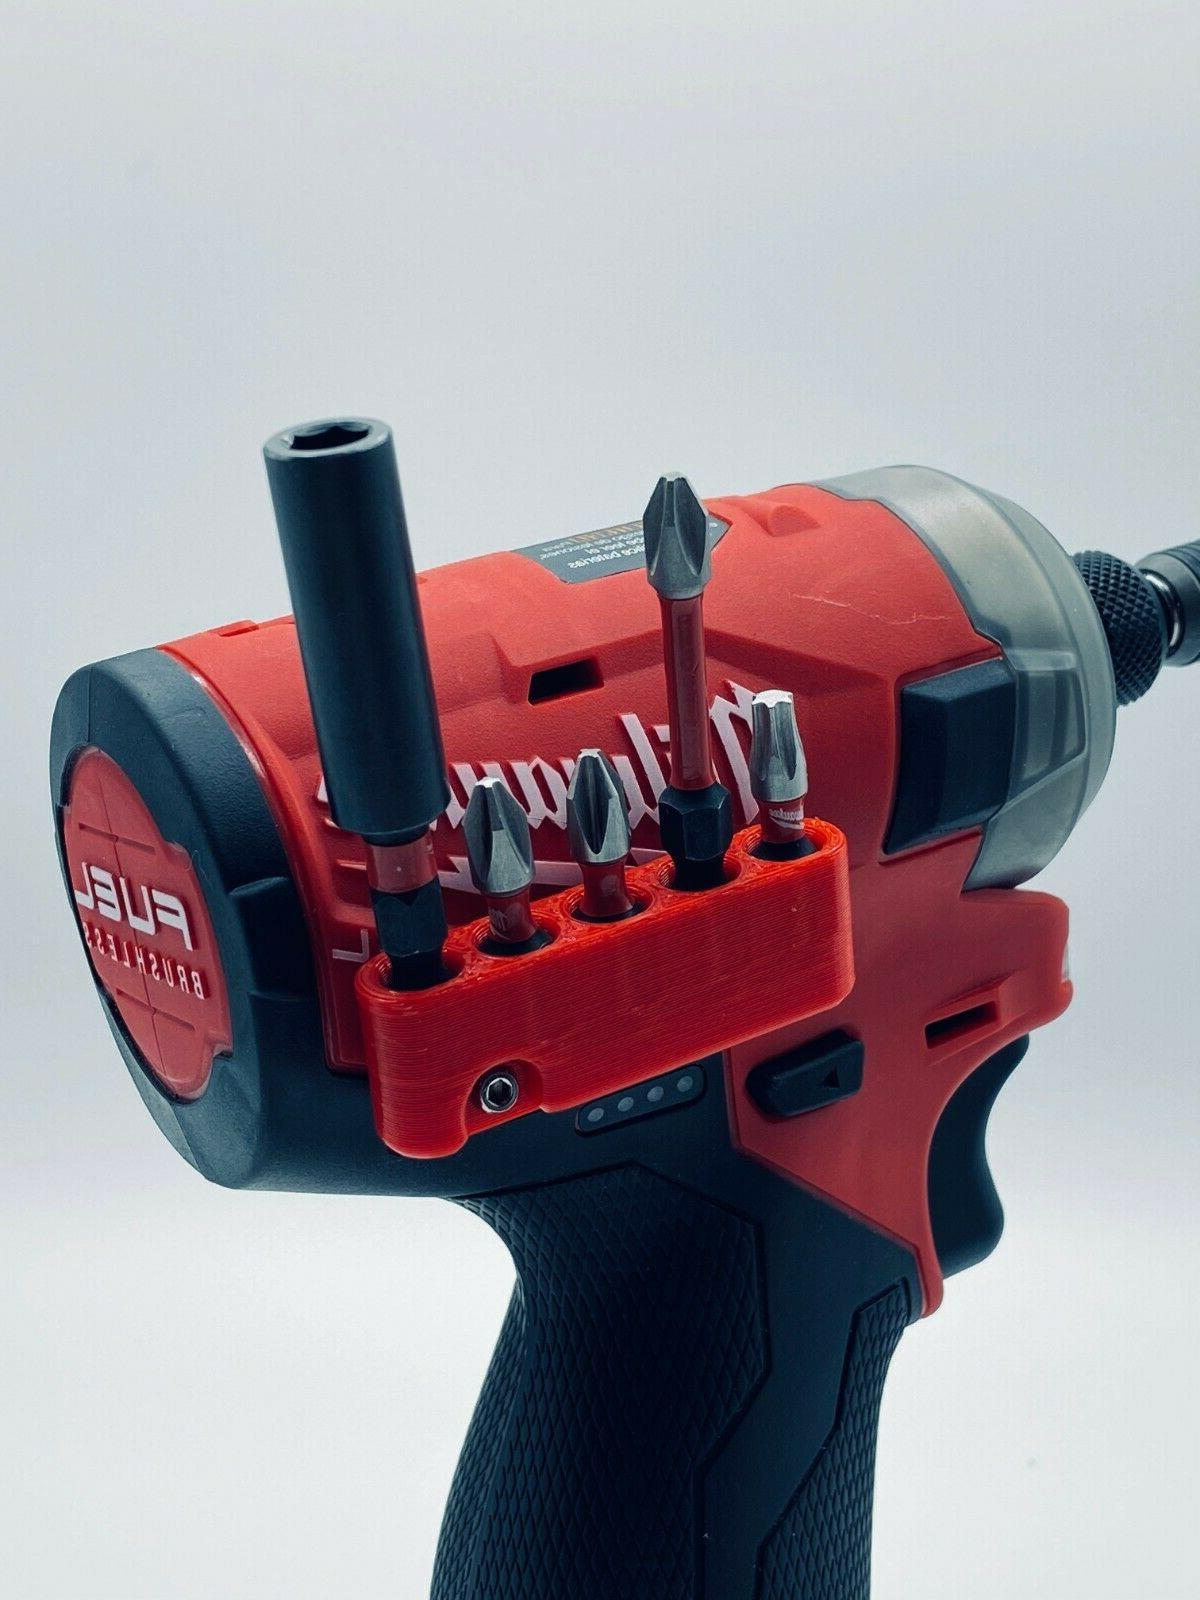 Magnetic Bit Holder 🧲 for Milwaukee M12 Surge Drill Drive